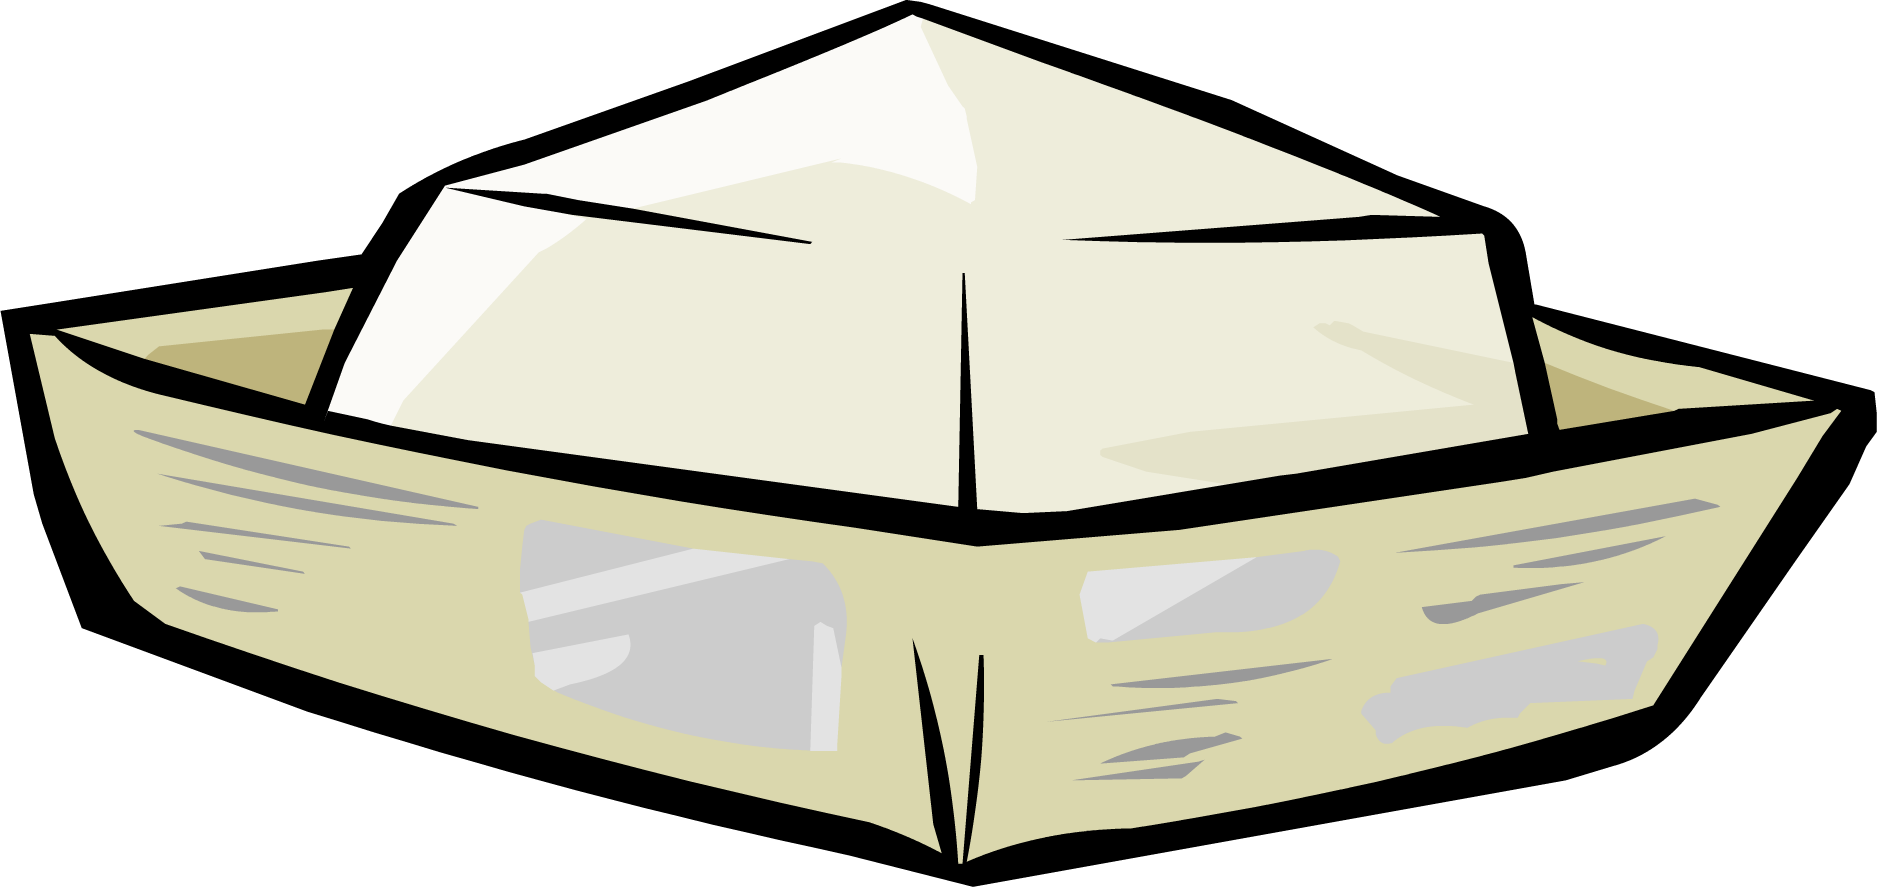 Club penguin wiki fandom. Newspaper clipart hat